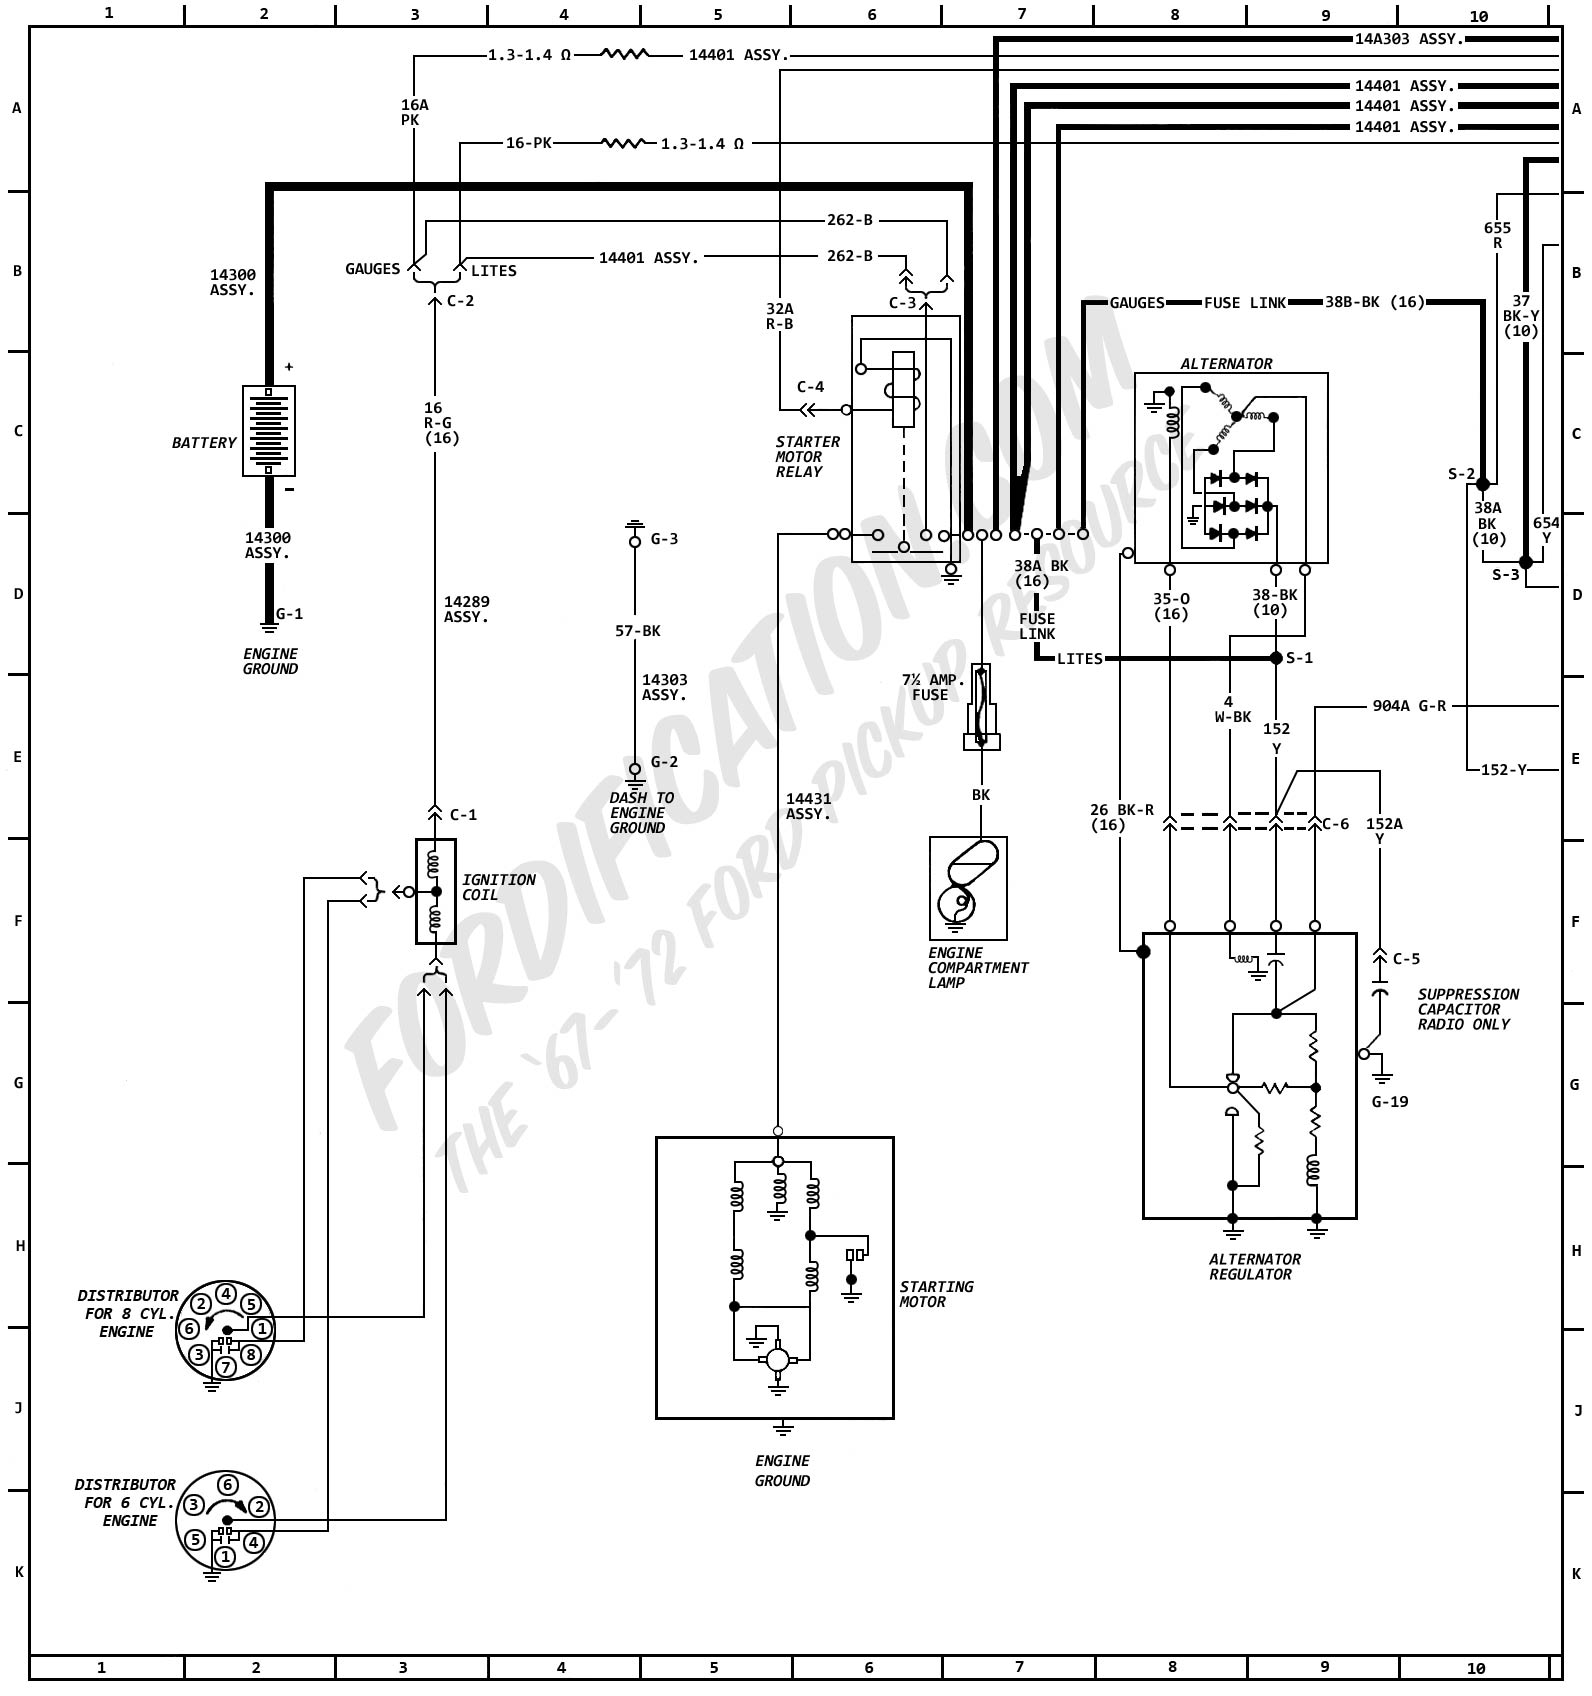 1972MasterWiring_01 1972 ford truck wiring diagrams fordification com 1971 ford f250 wiring diagram at mr168.co